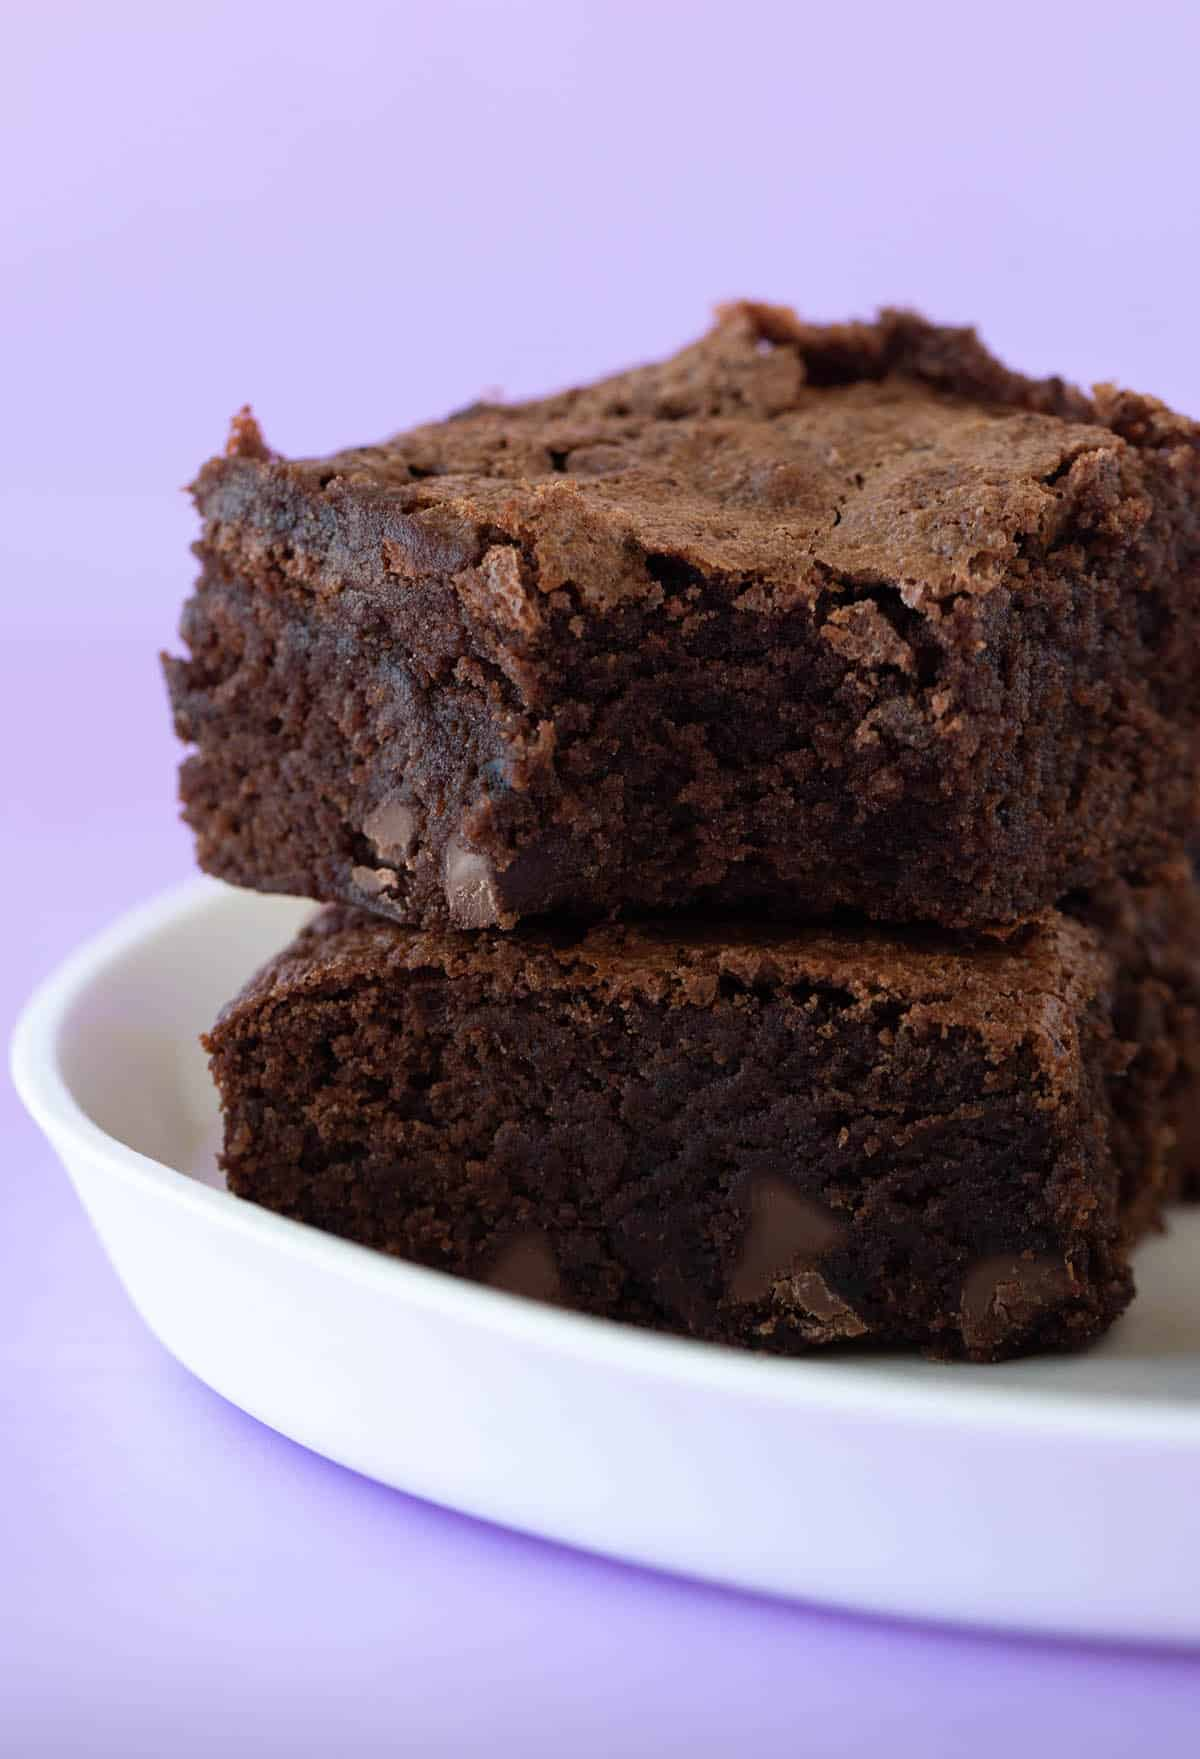 Cocoa Brownies with a bite taken out of it